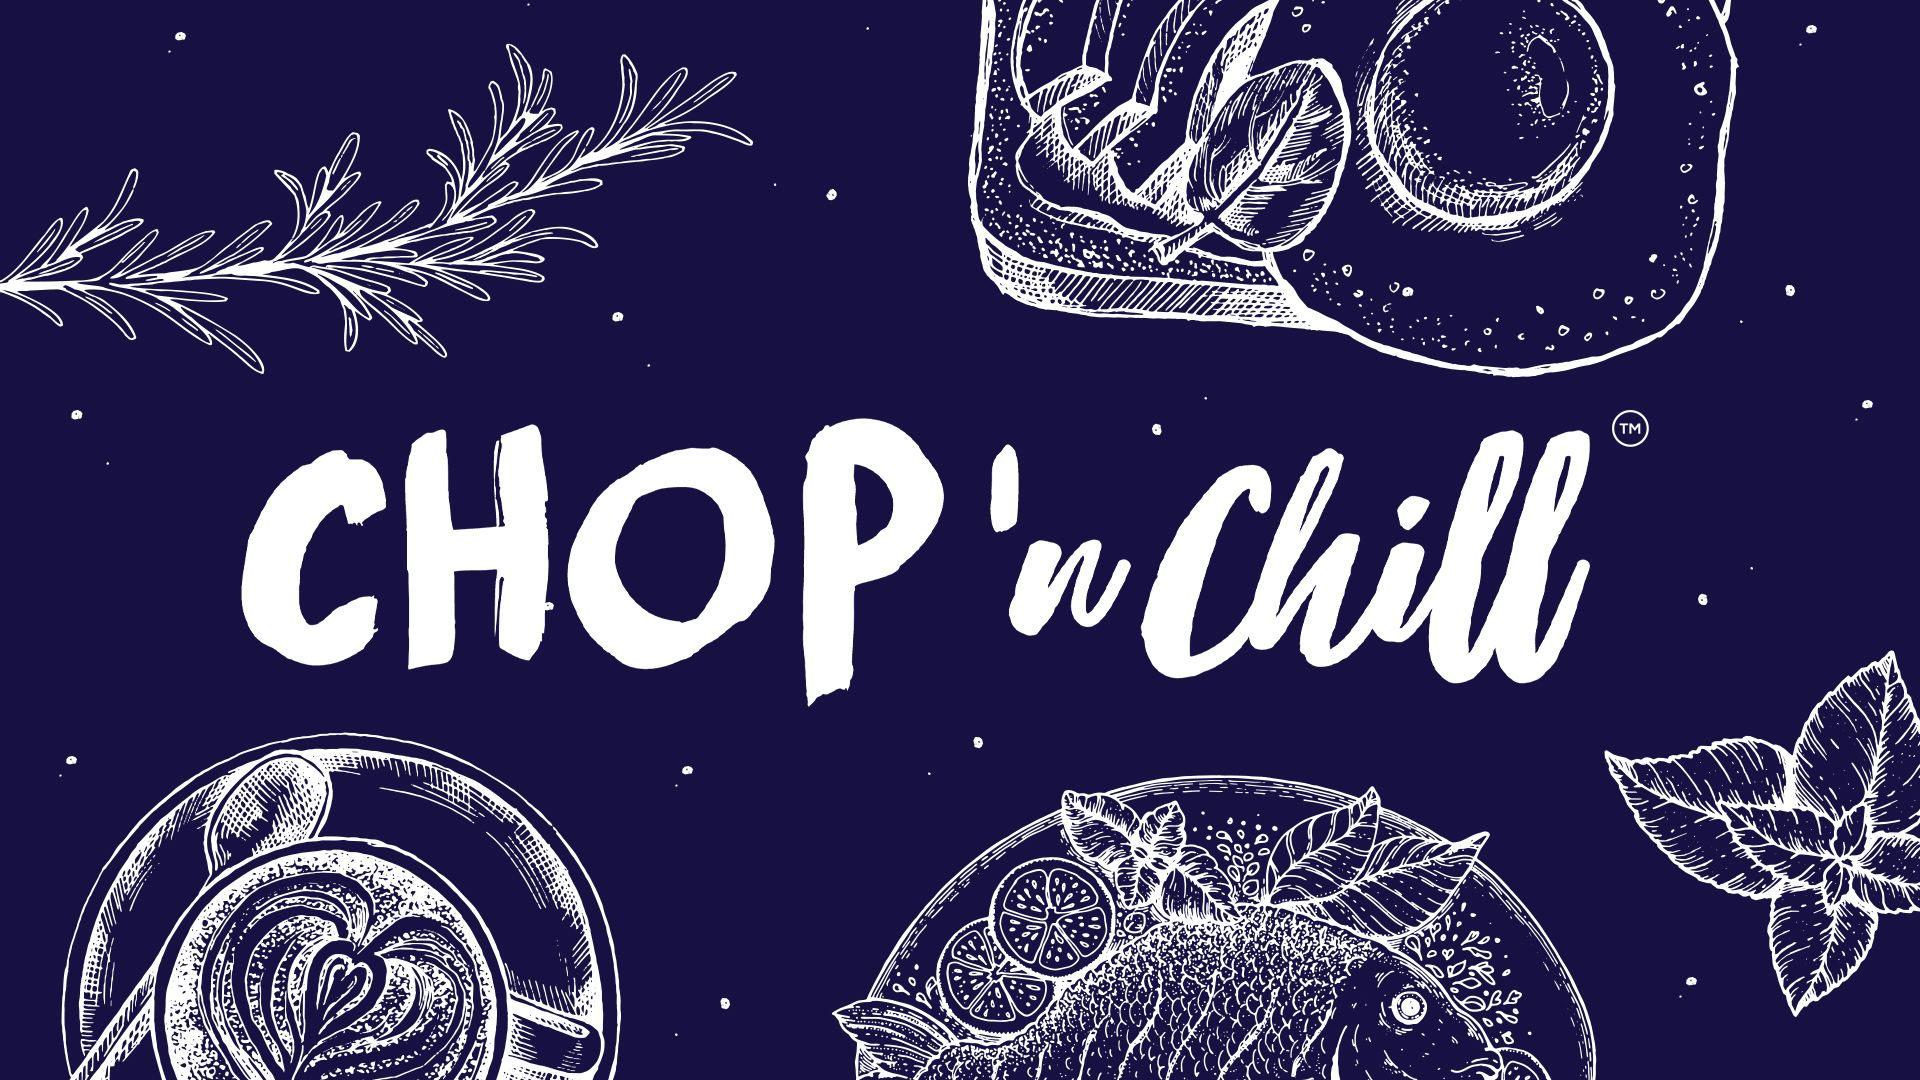 Website Development for Chop N Chill